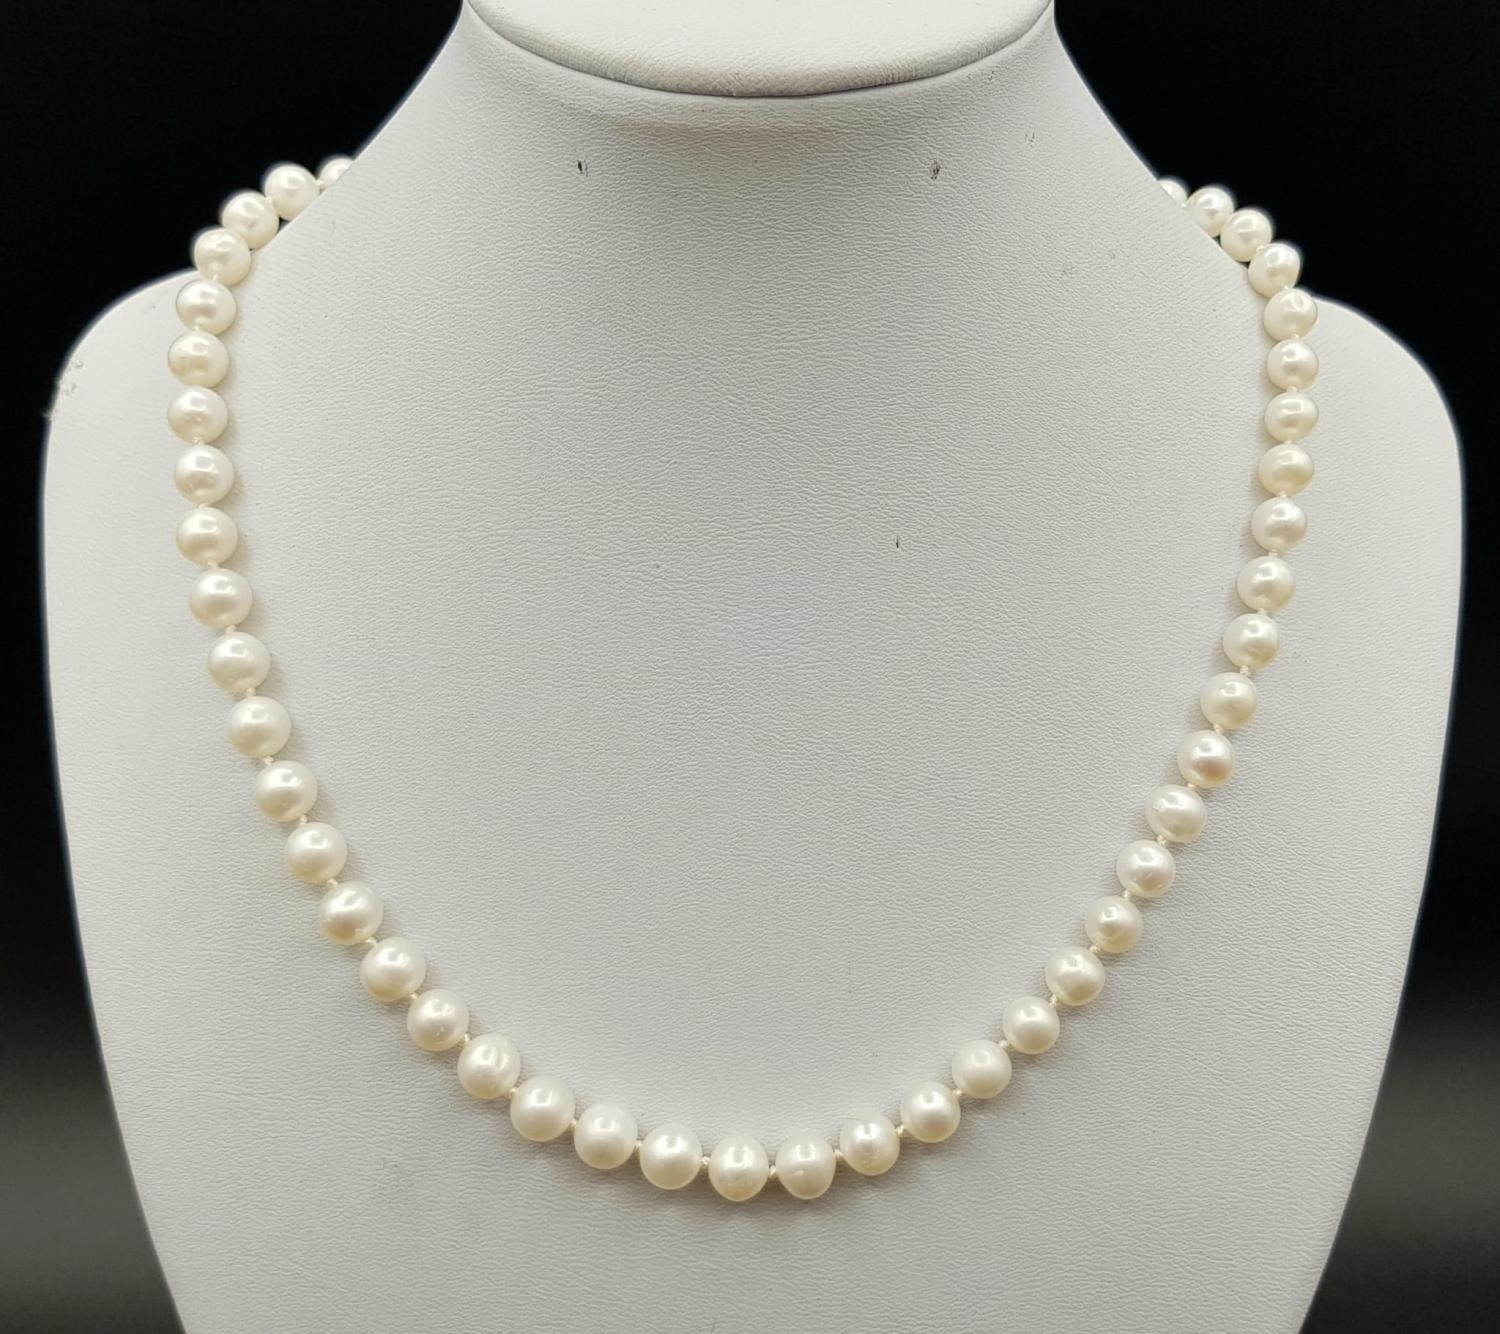 16? length string of high quality Japanese cultured pearls (7.5mm size) strung on silk with a 9